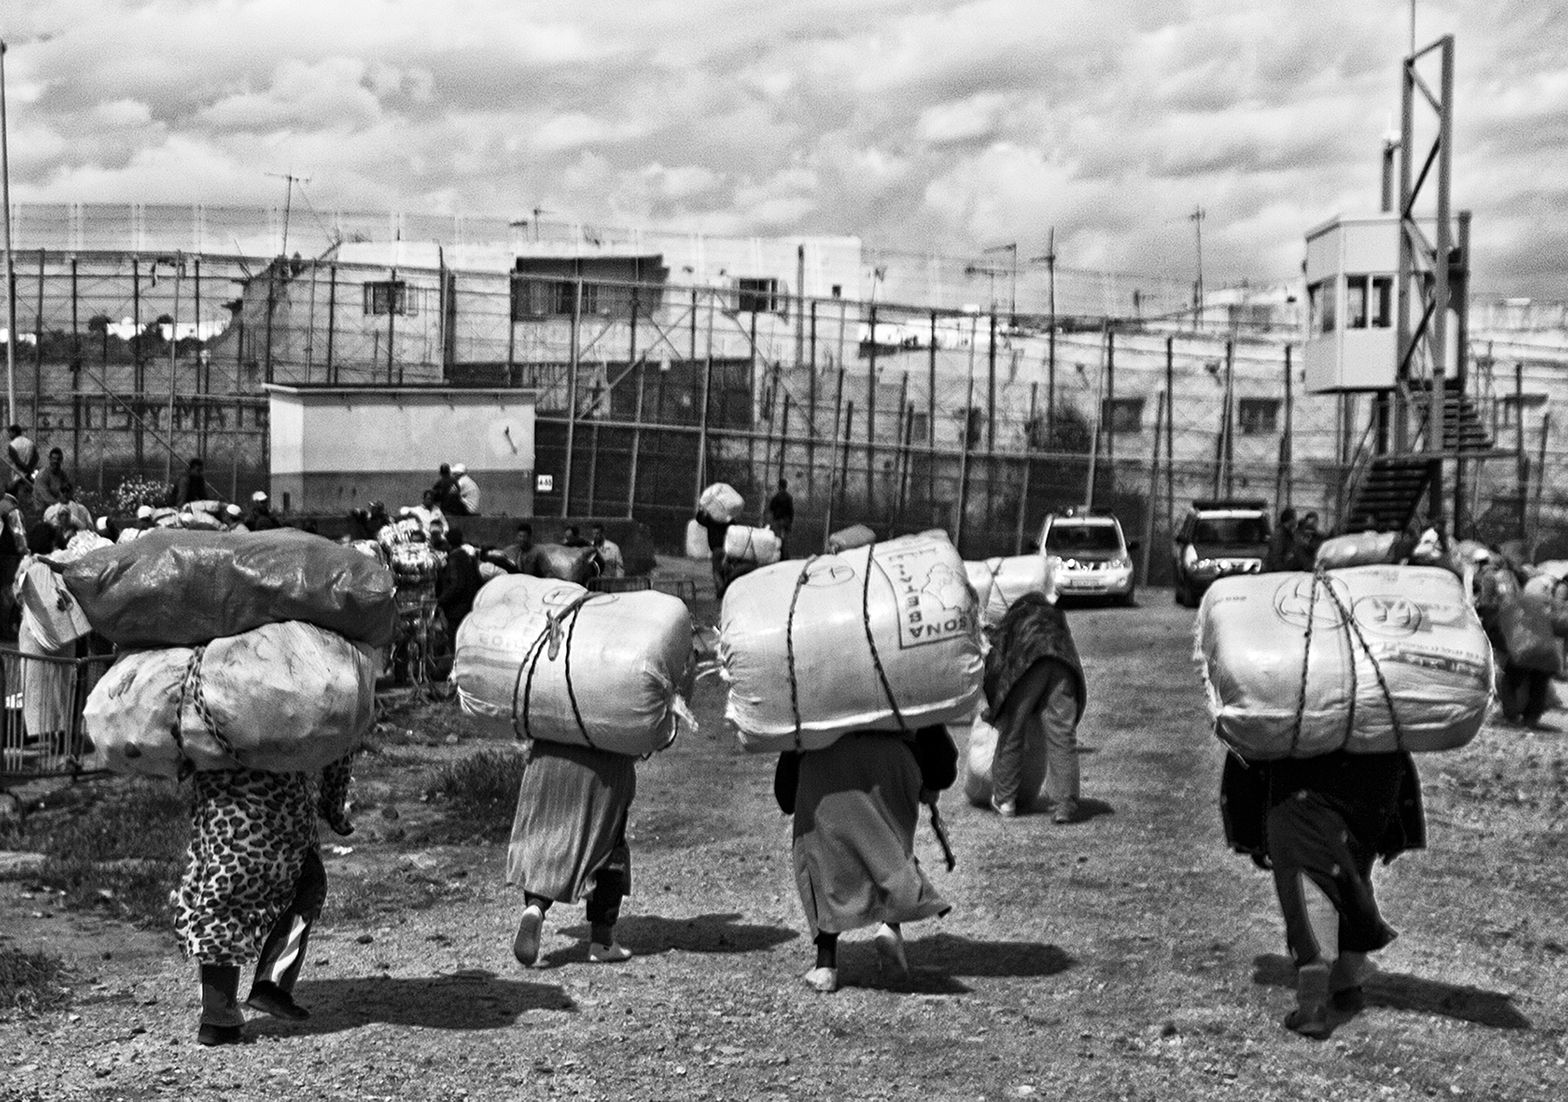 Four women walk towards the border with heavy loads on their backs. Melilla